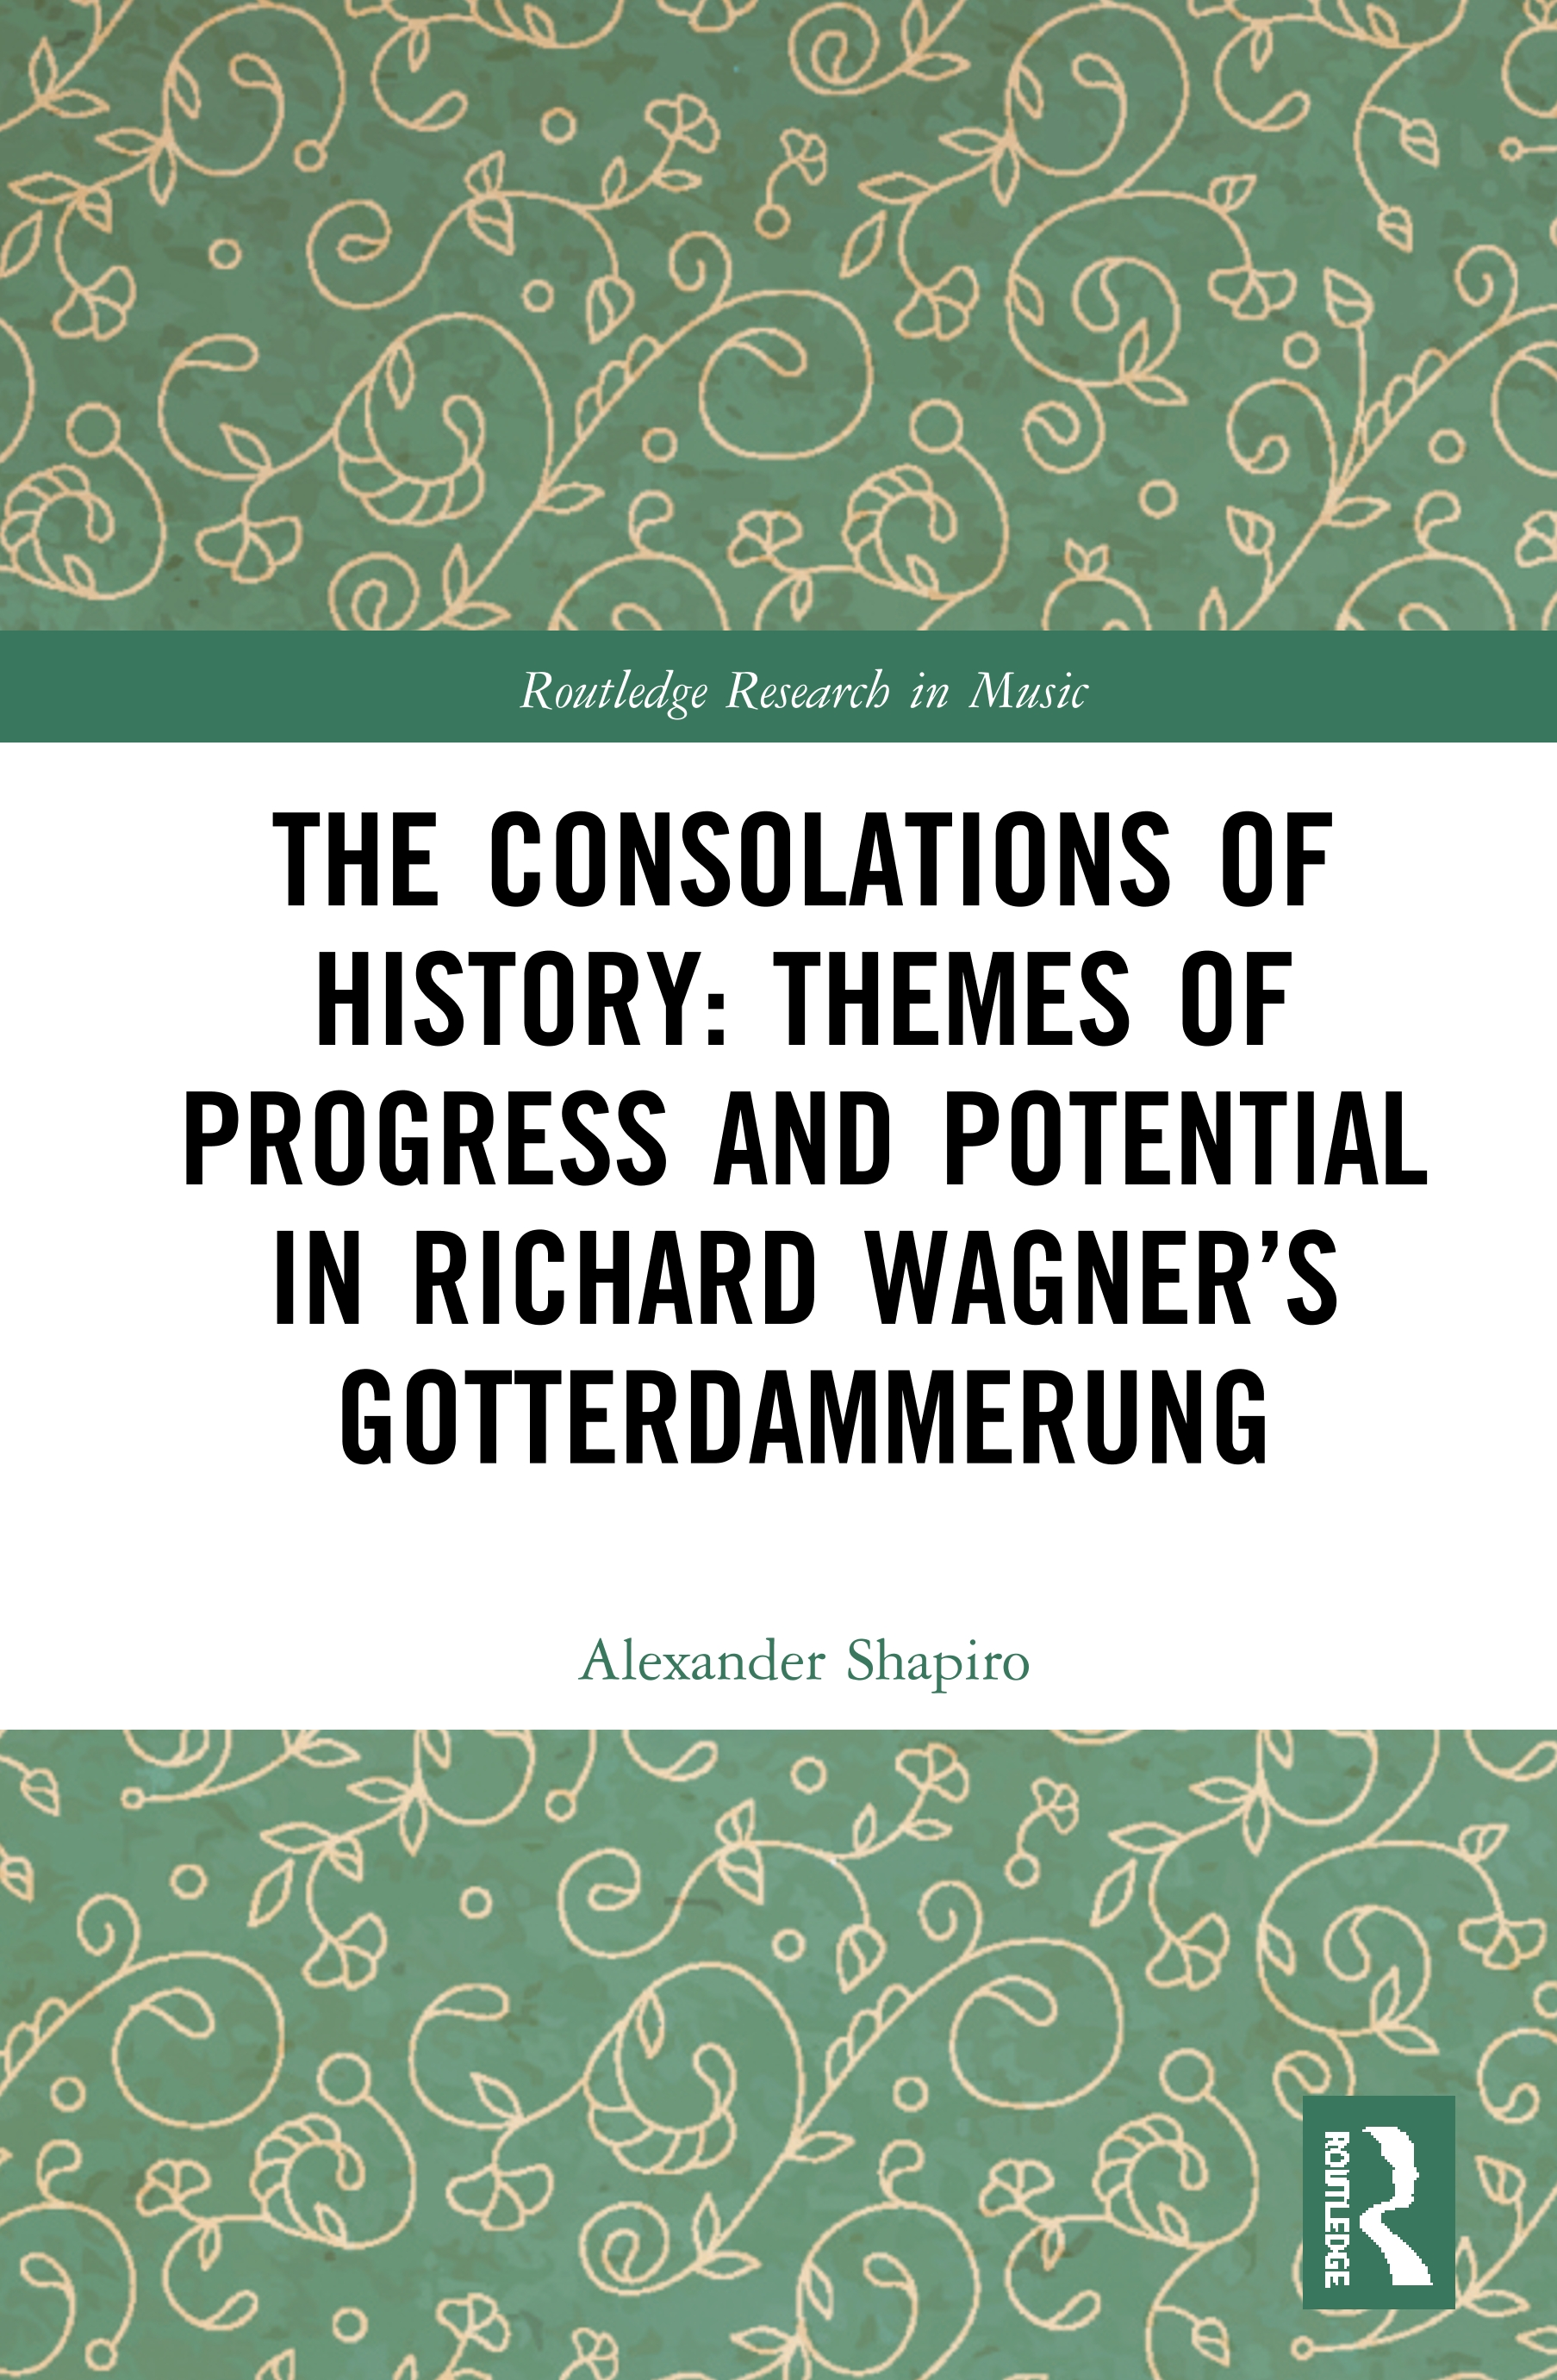 The Consolations of History in Richard Wagner's Götterdämmerung book cover